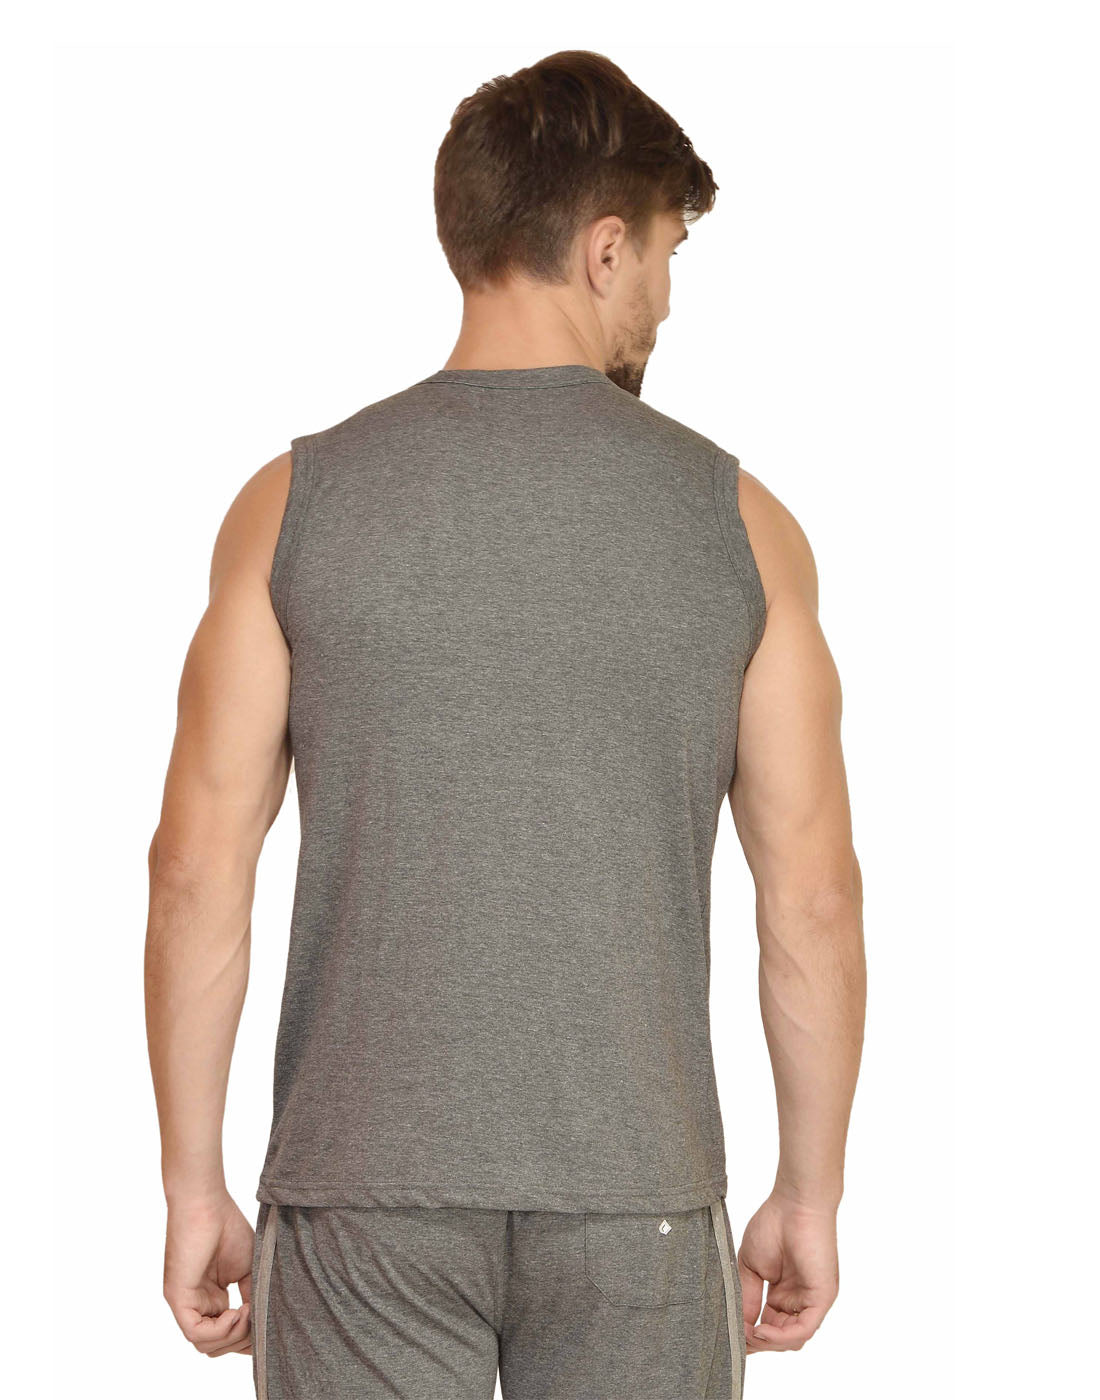 Train Hard Gym Vest For Men